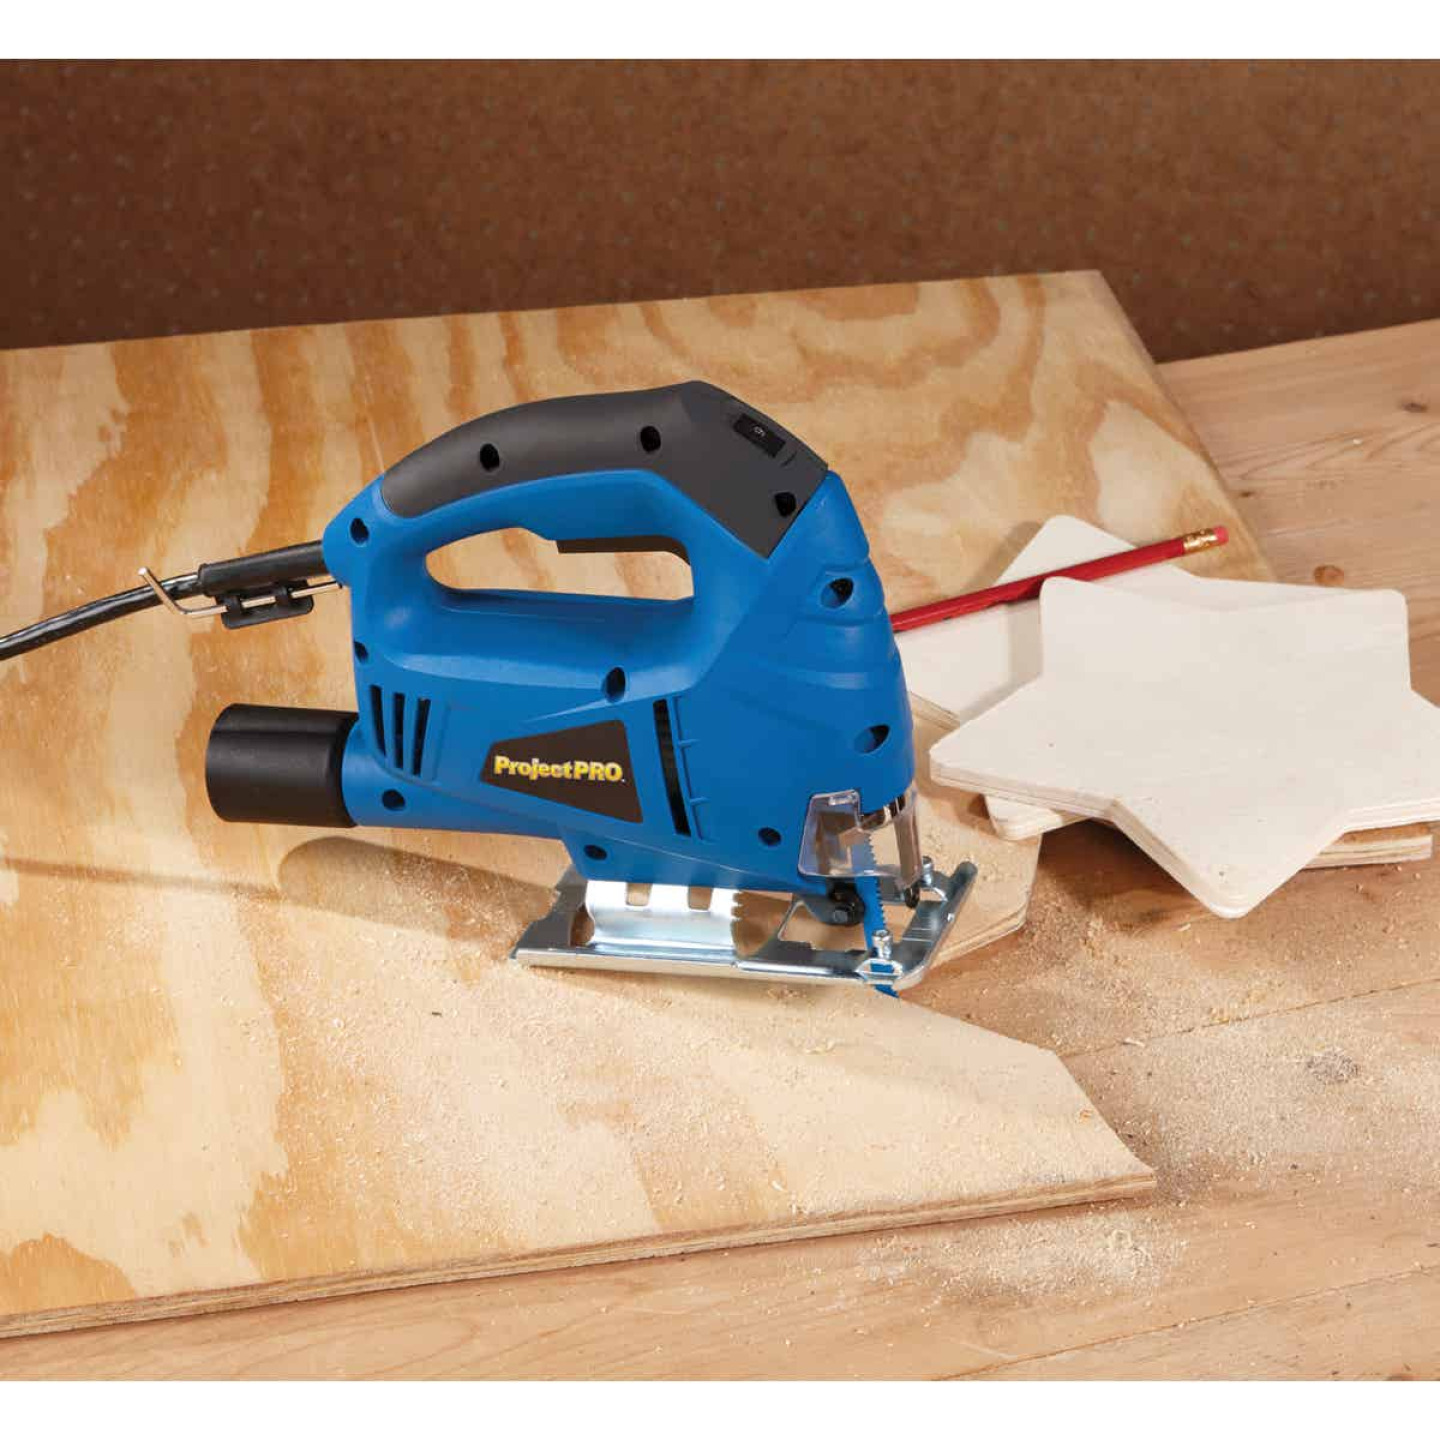 Project Pro 4.5A 0-3000 SPM Speed Jig Saw Image 2